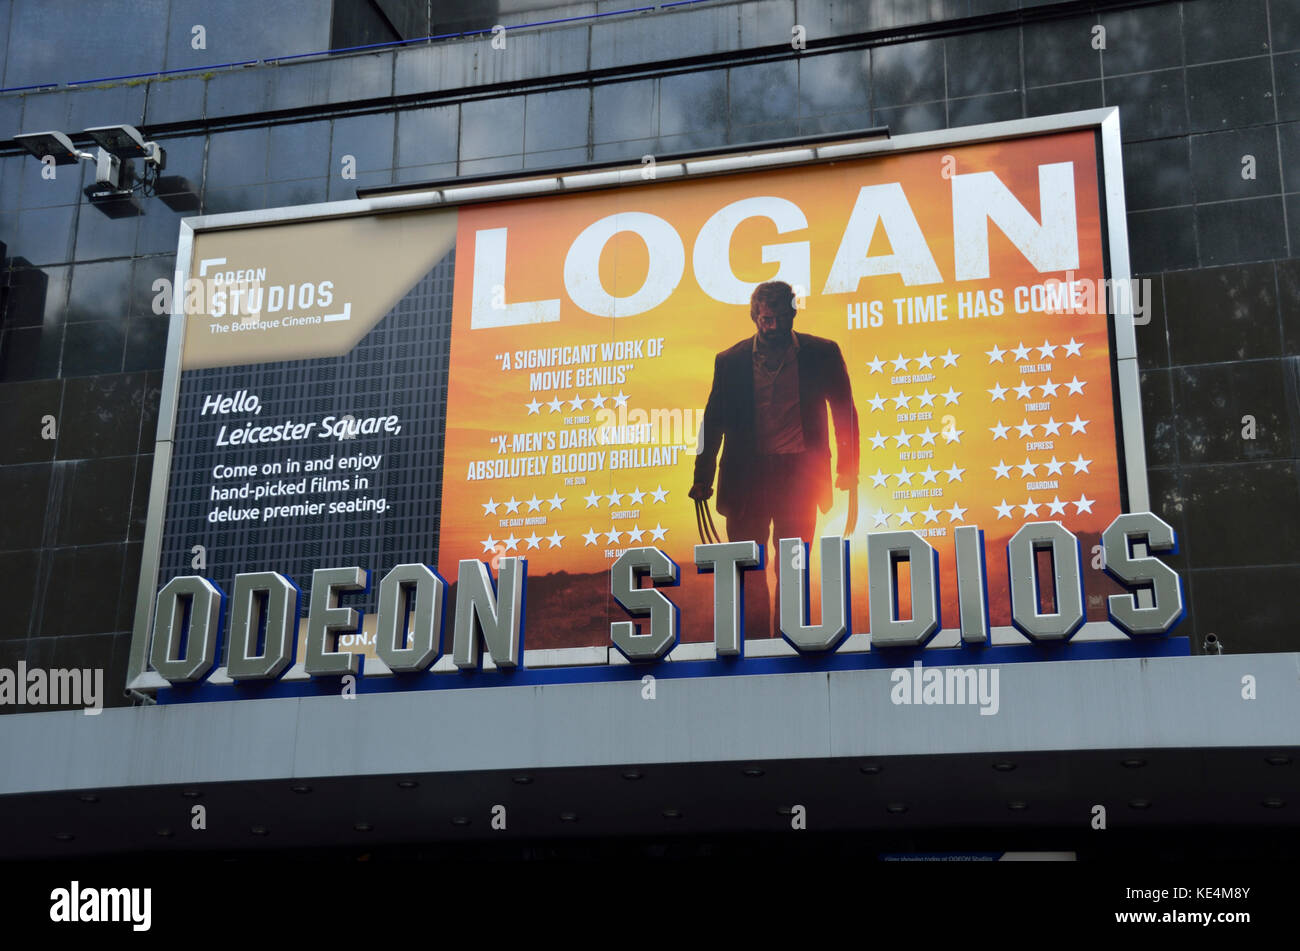 Logan film billboard poster outside the Odeon Studios in Leicester Square, London, UK. - Stock Image